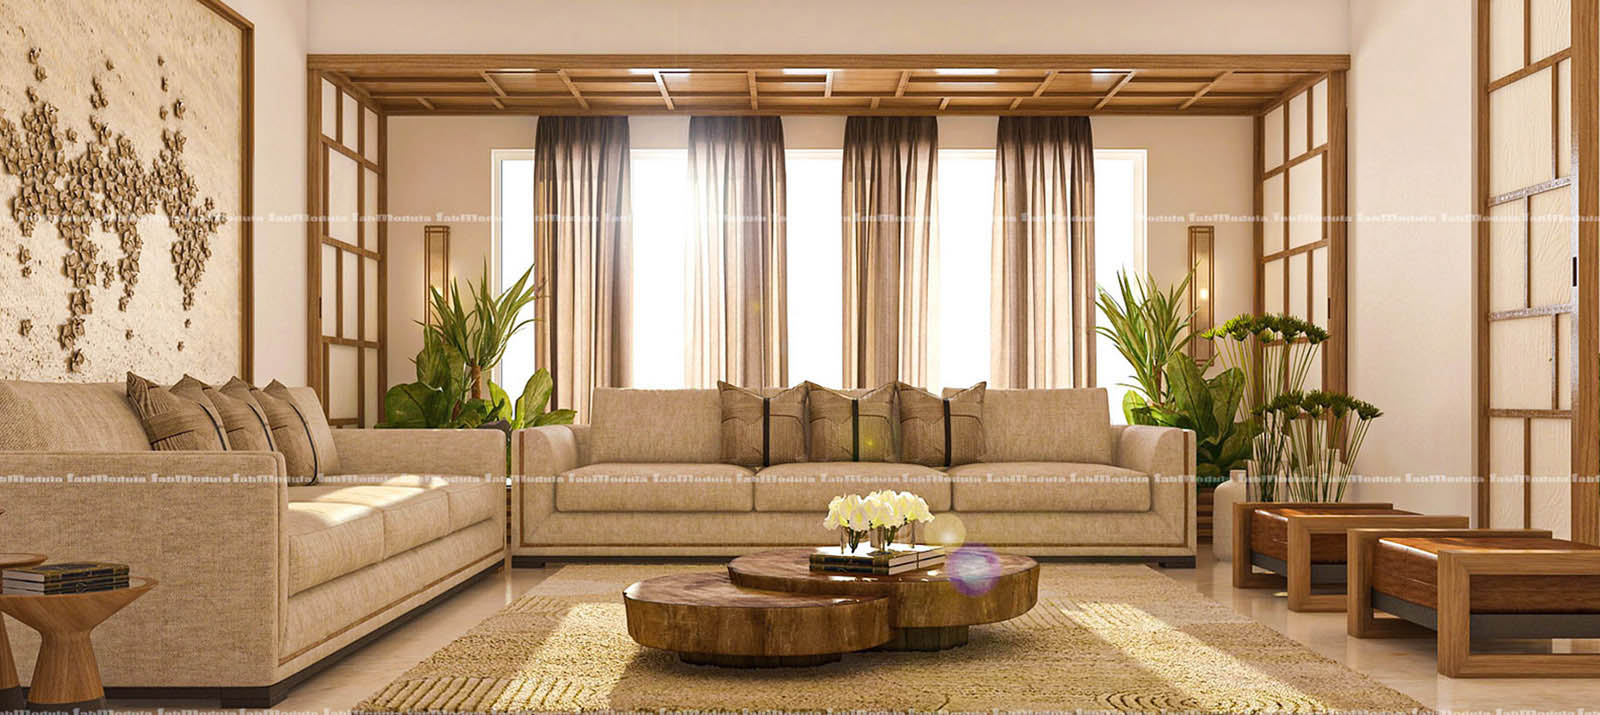 Fabmodula interior designers bangalore best interior design for Home interior designers in bangalore